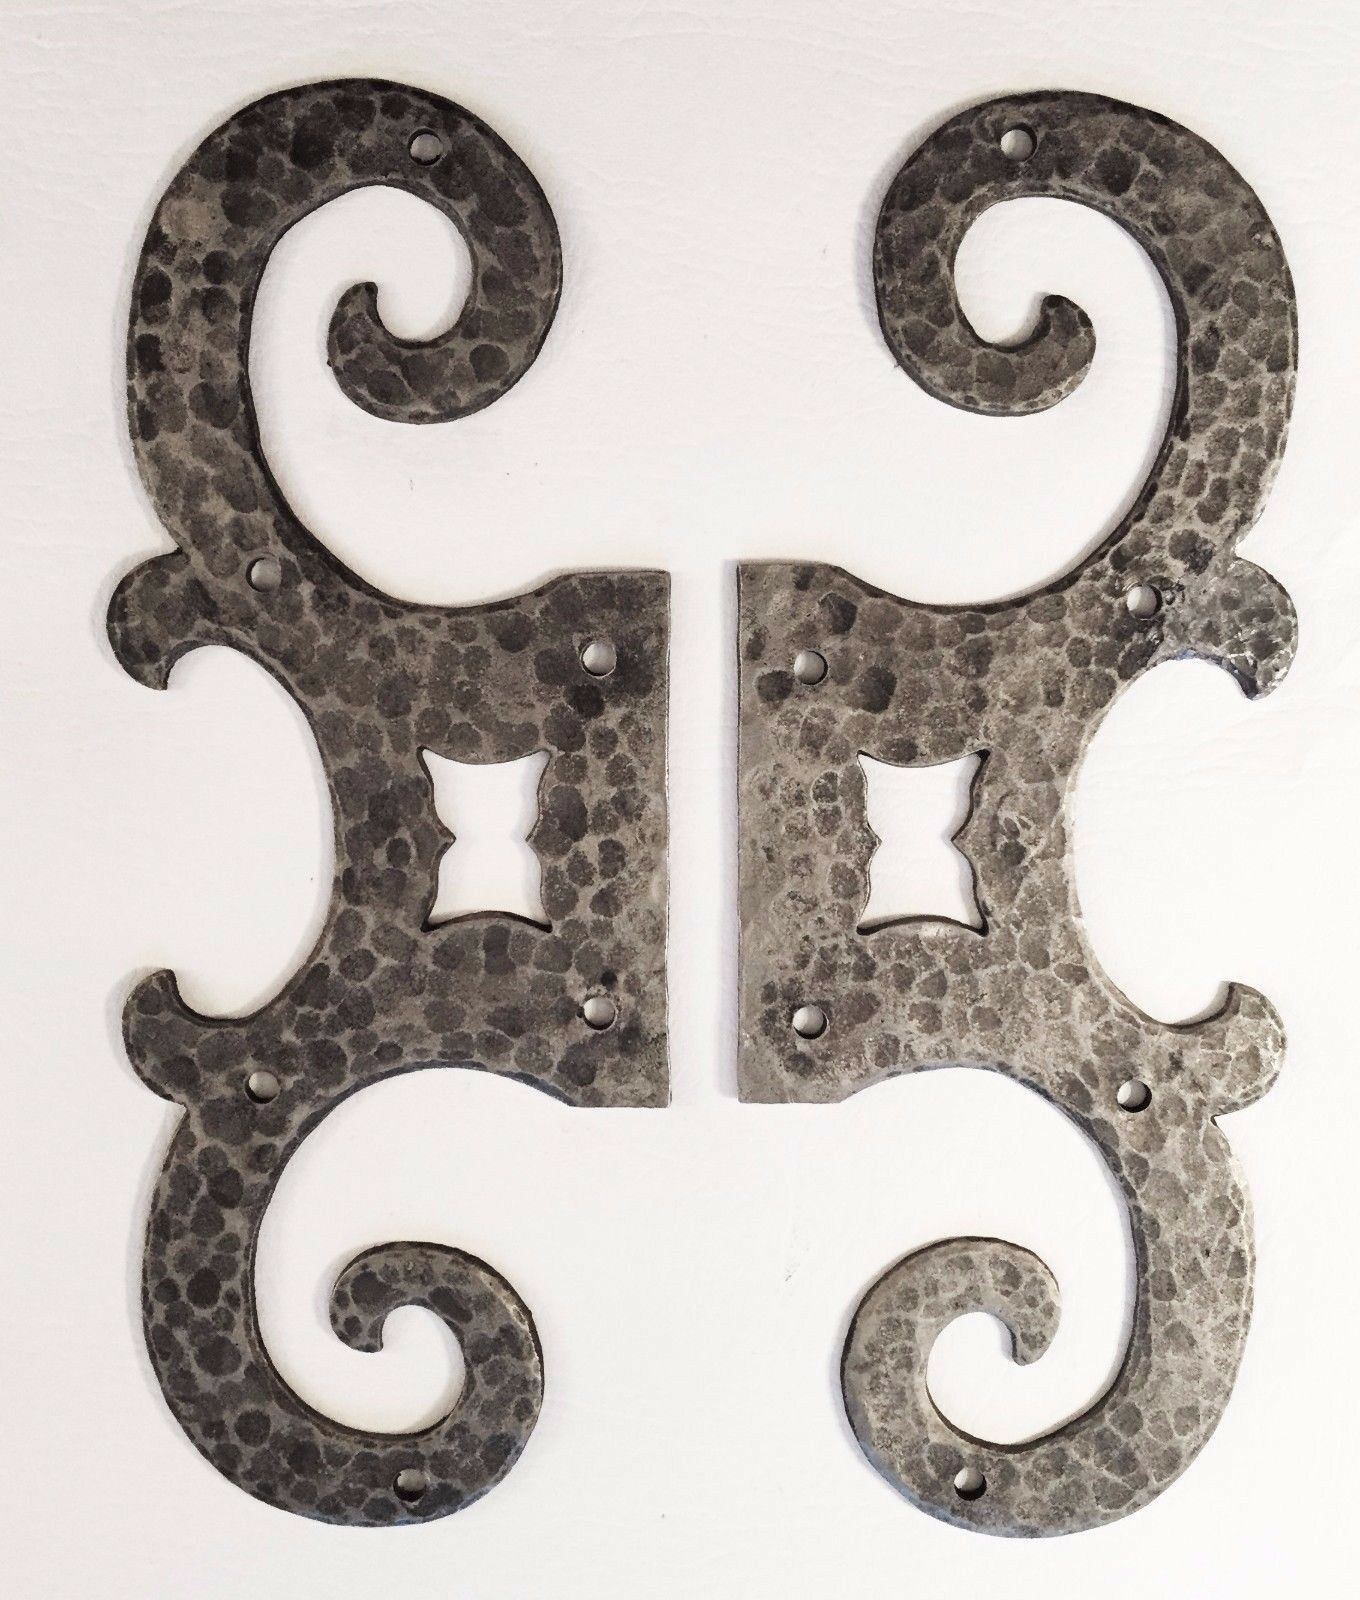 Iron Antique Hardware Vintage Scroll Decorative Door Cabinet Metal Mounts